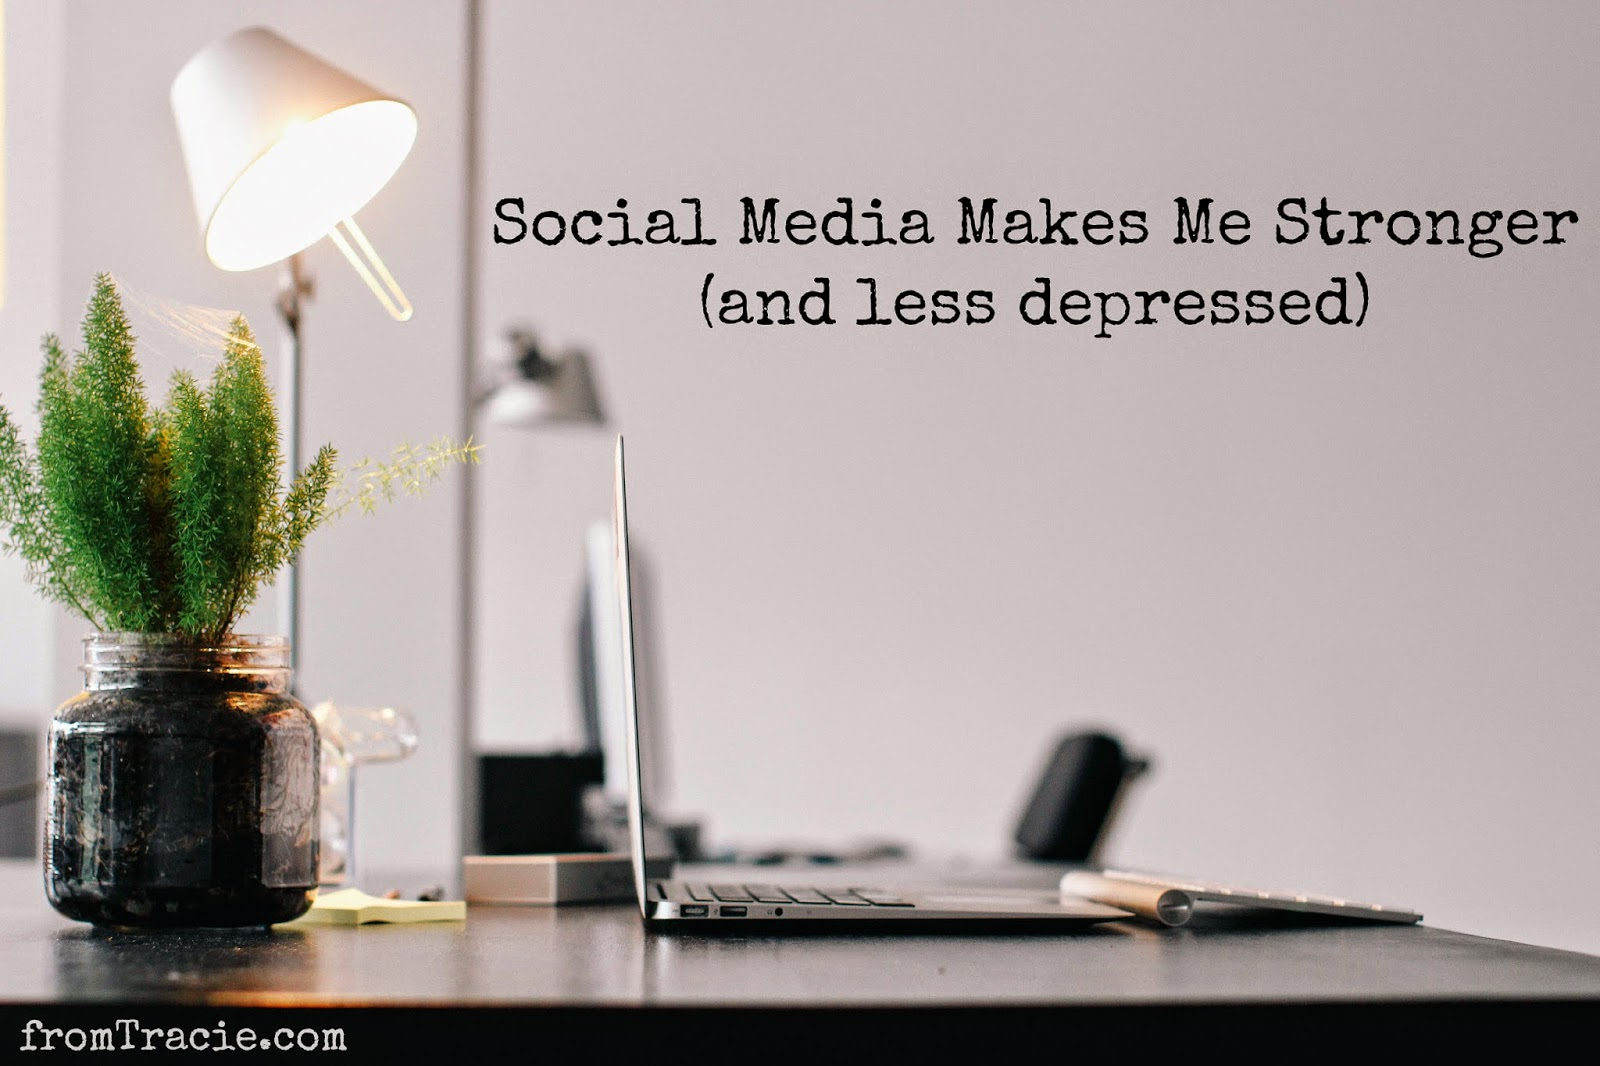 Social Media Makes Me Stronger And Less Depressed